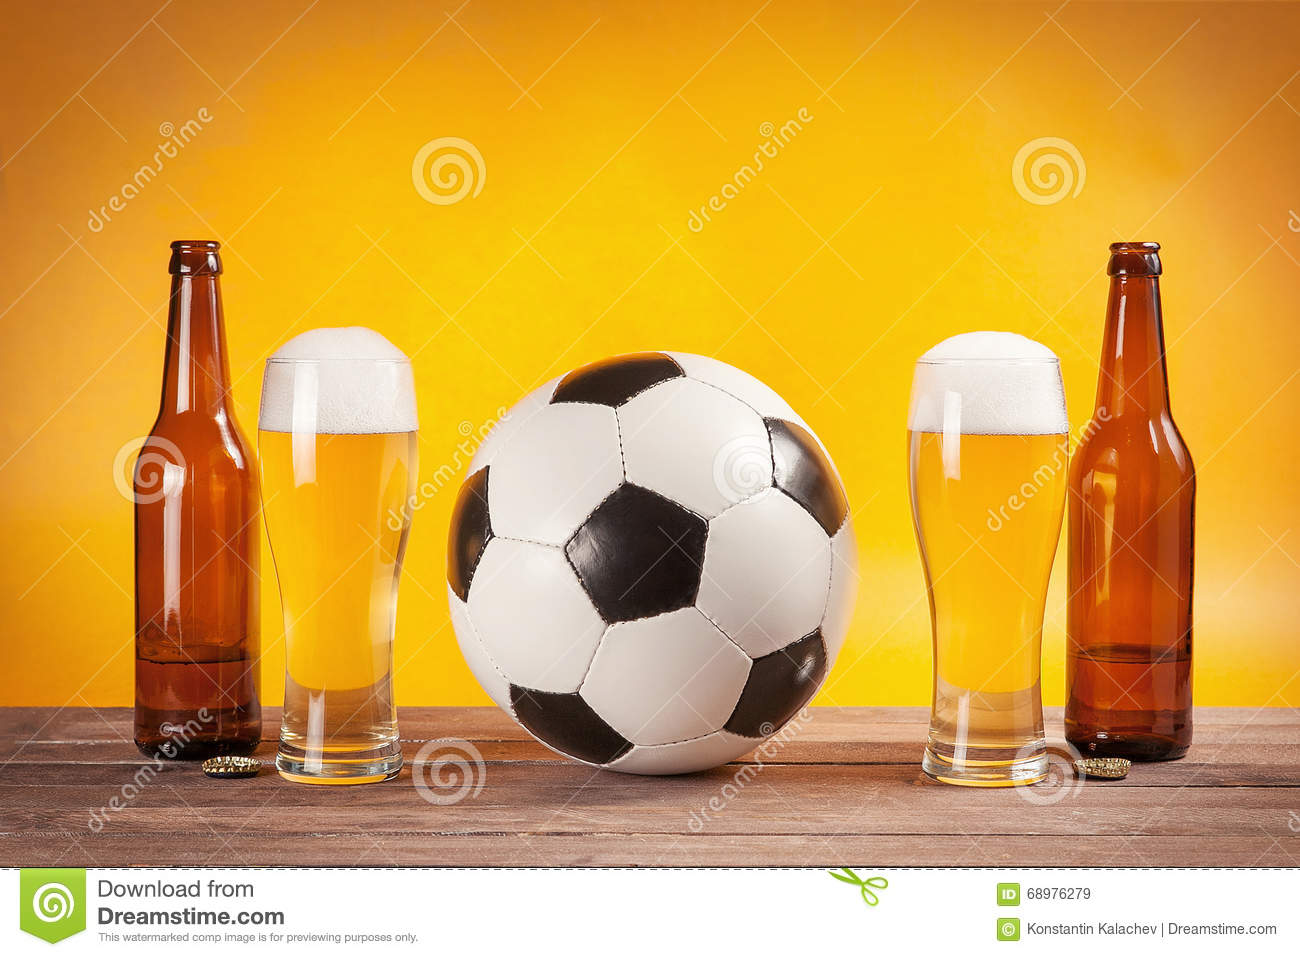 Two glasses of beer and bottles near soccer ball